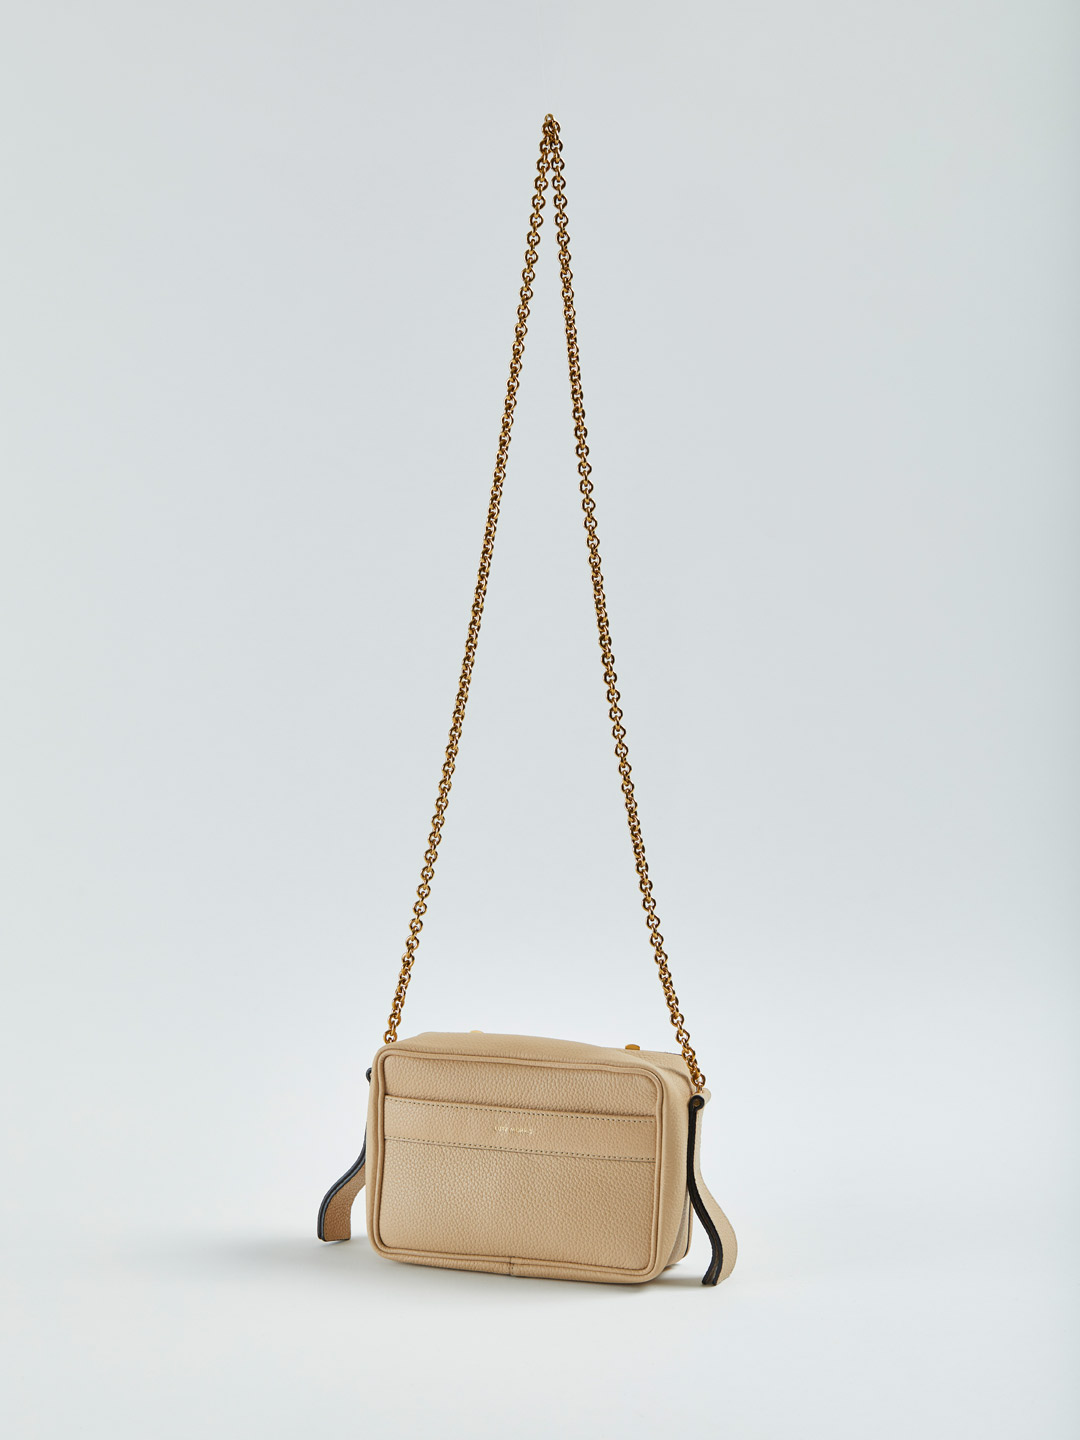 Malloy Medium Cross Body Chain Bag - Beige